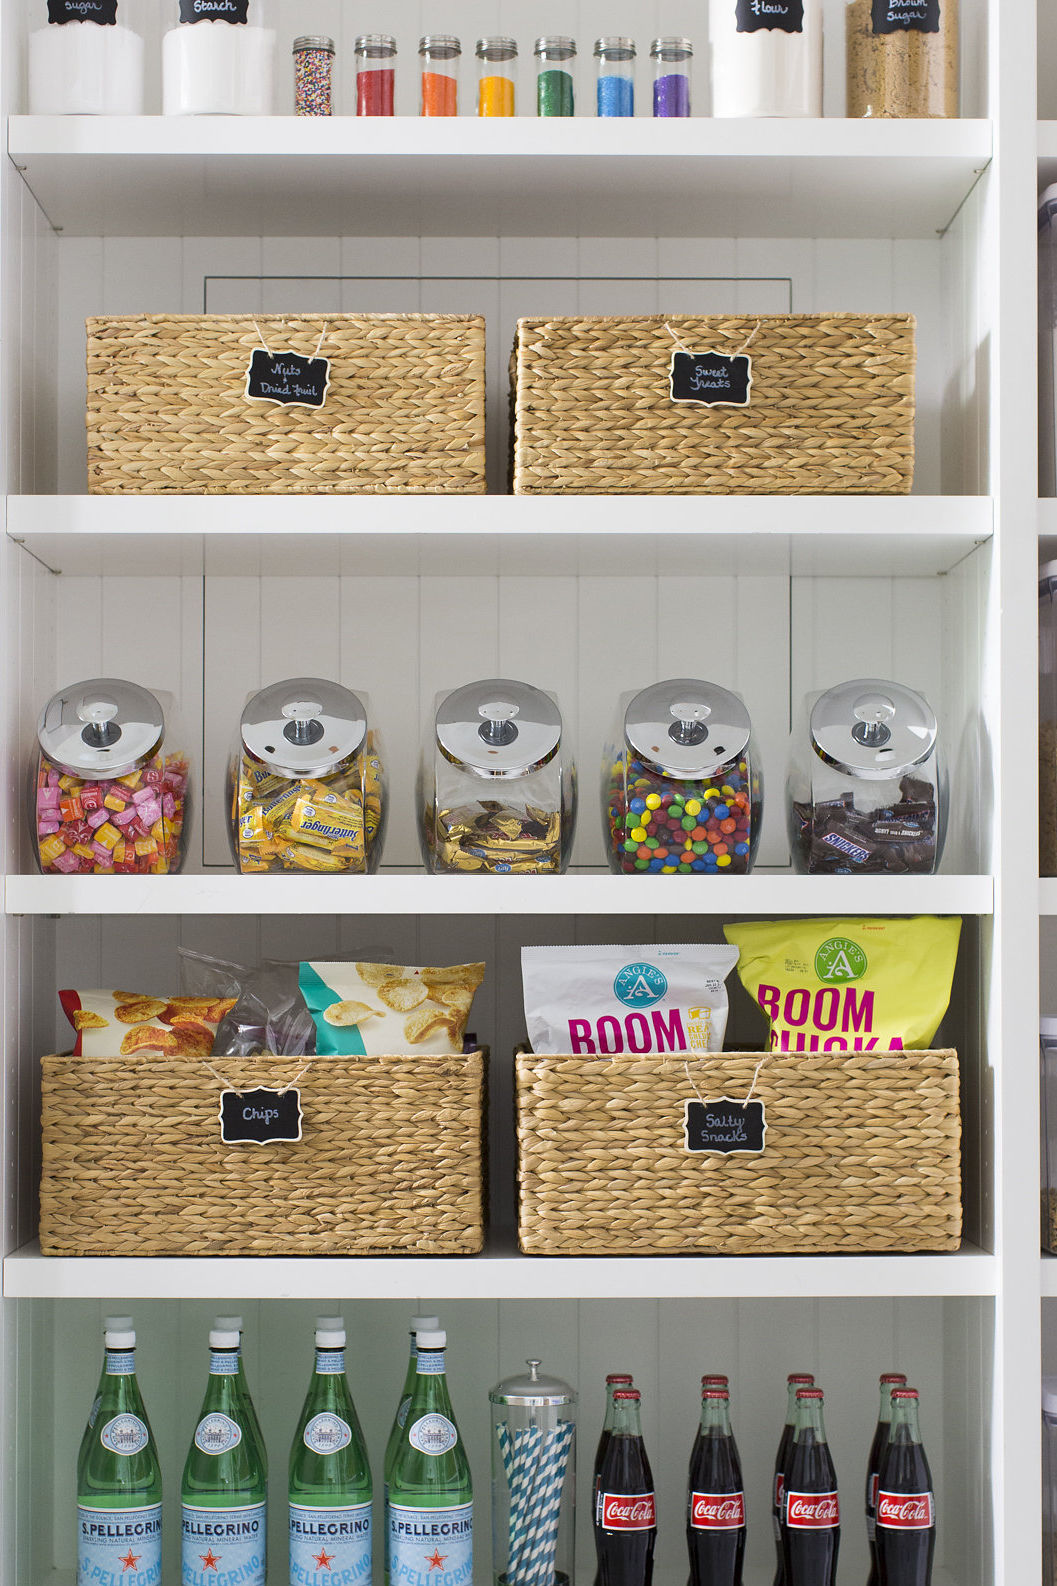 5 Things Super-Organized People Do Every Day